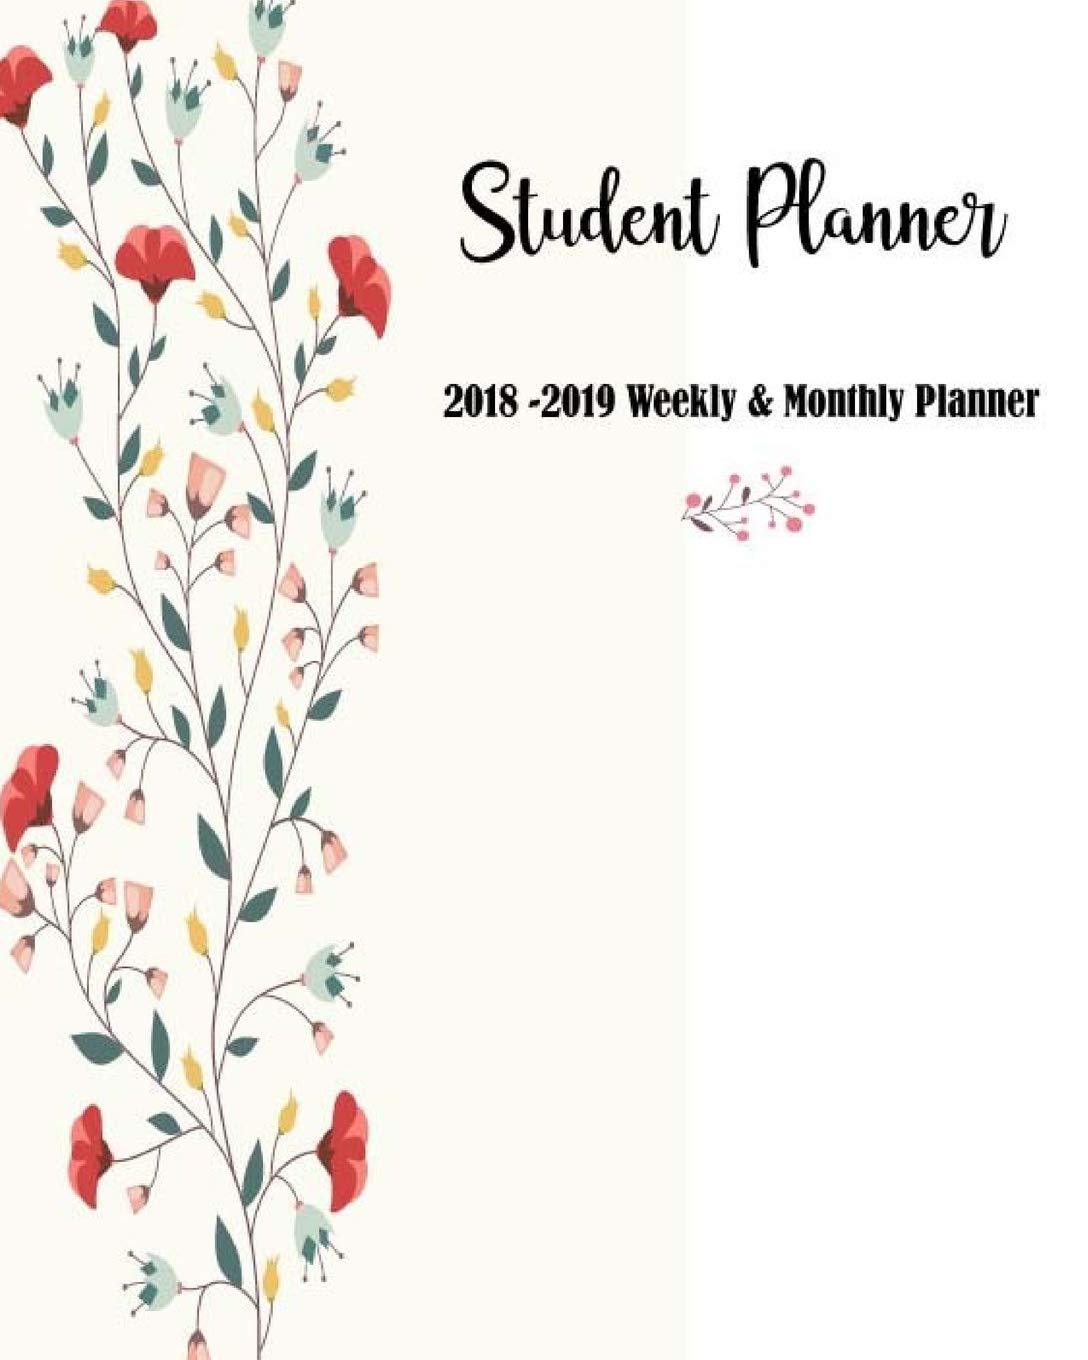 Weekly and Monthly Planner August 2019 September 2018 Weekly Planner: Daily